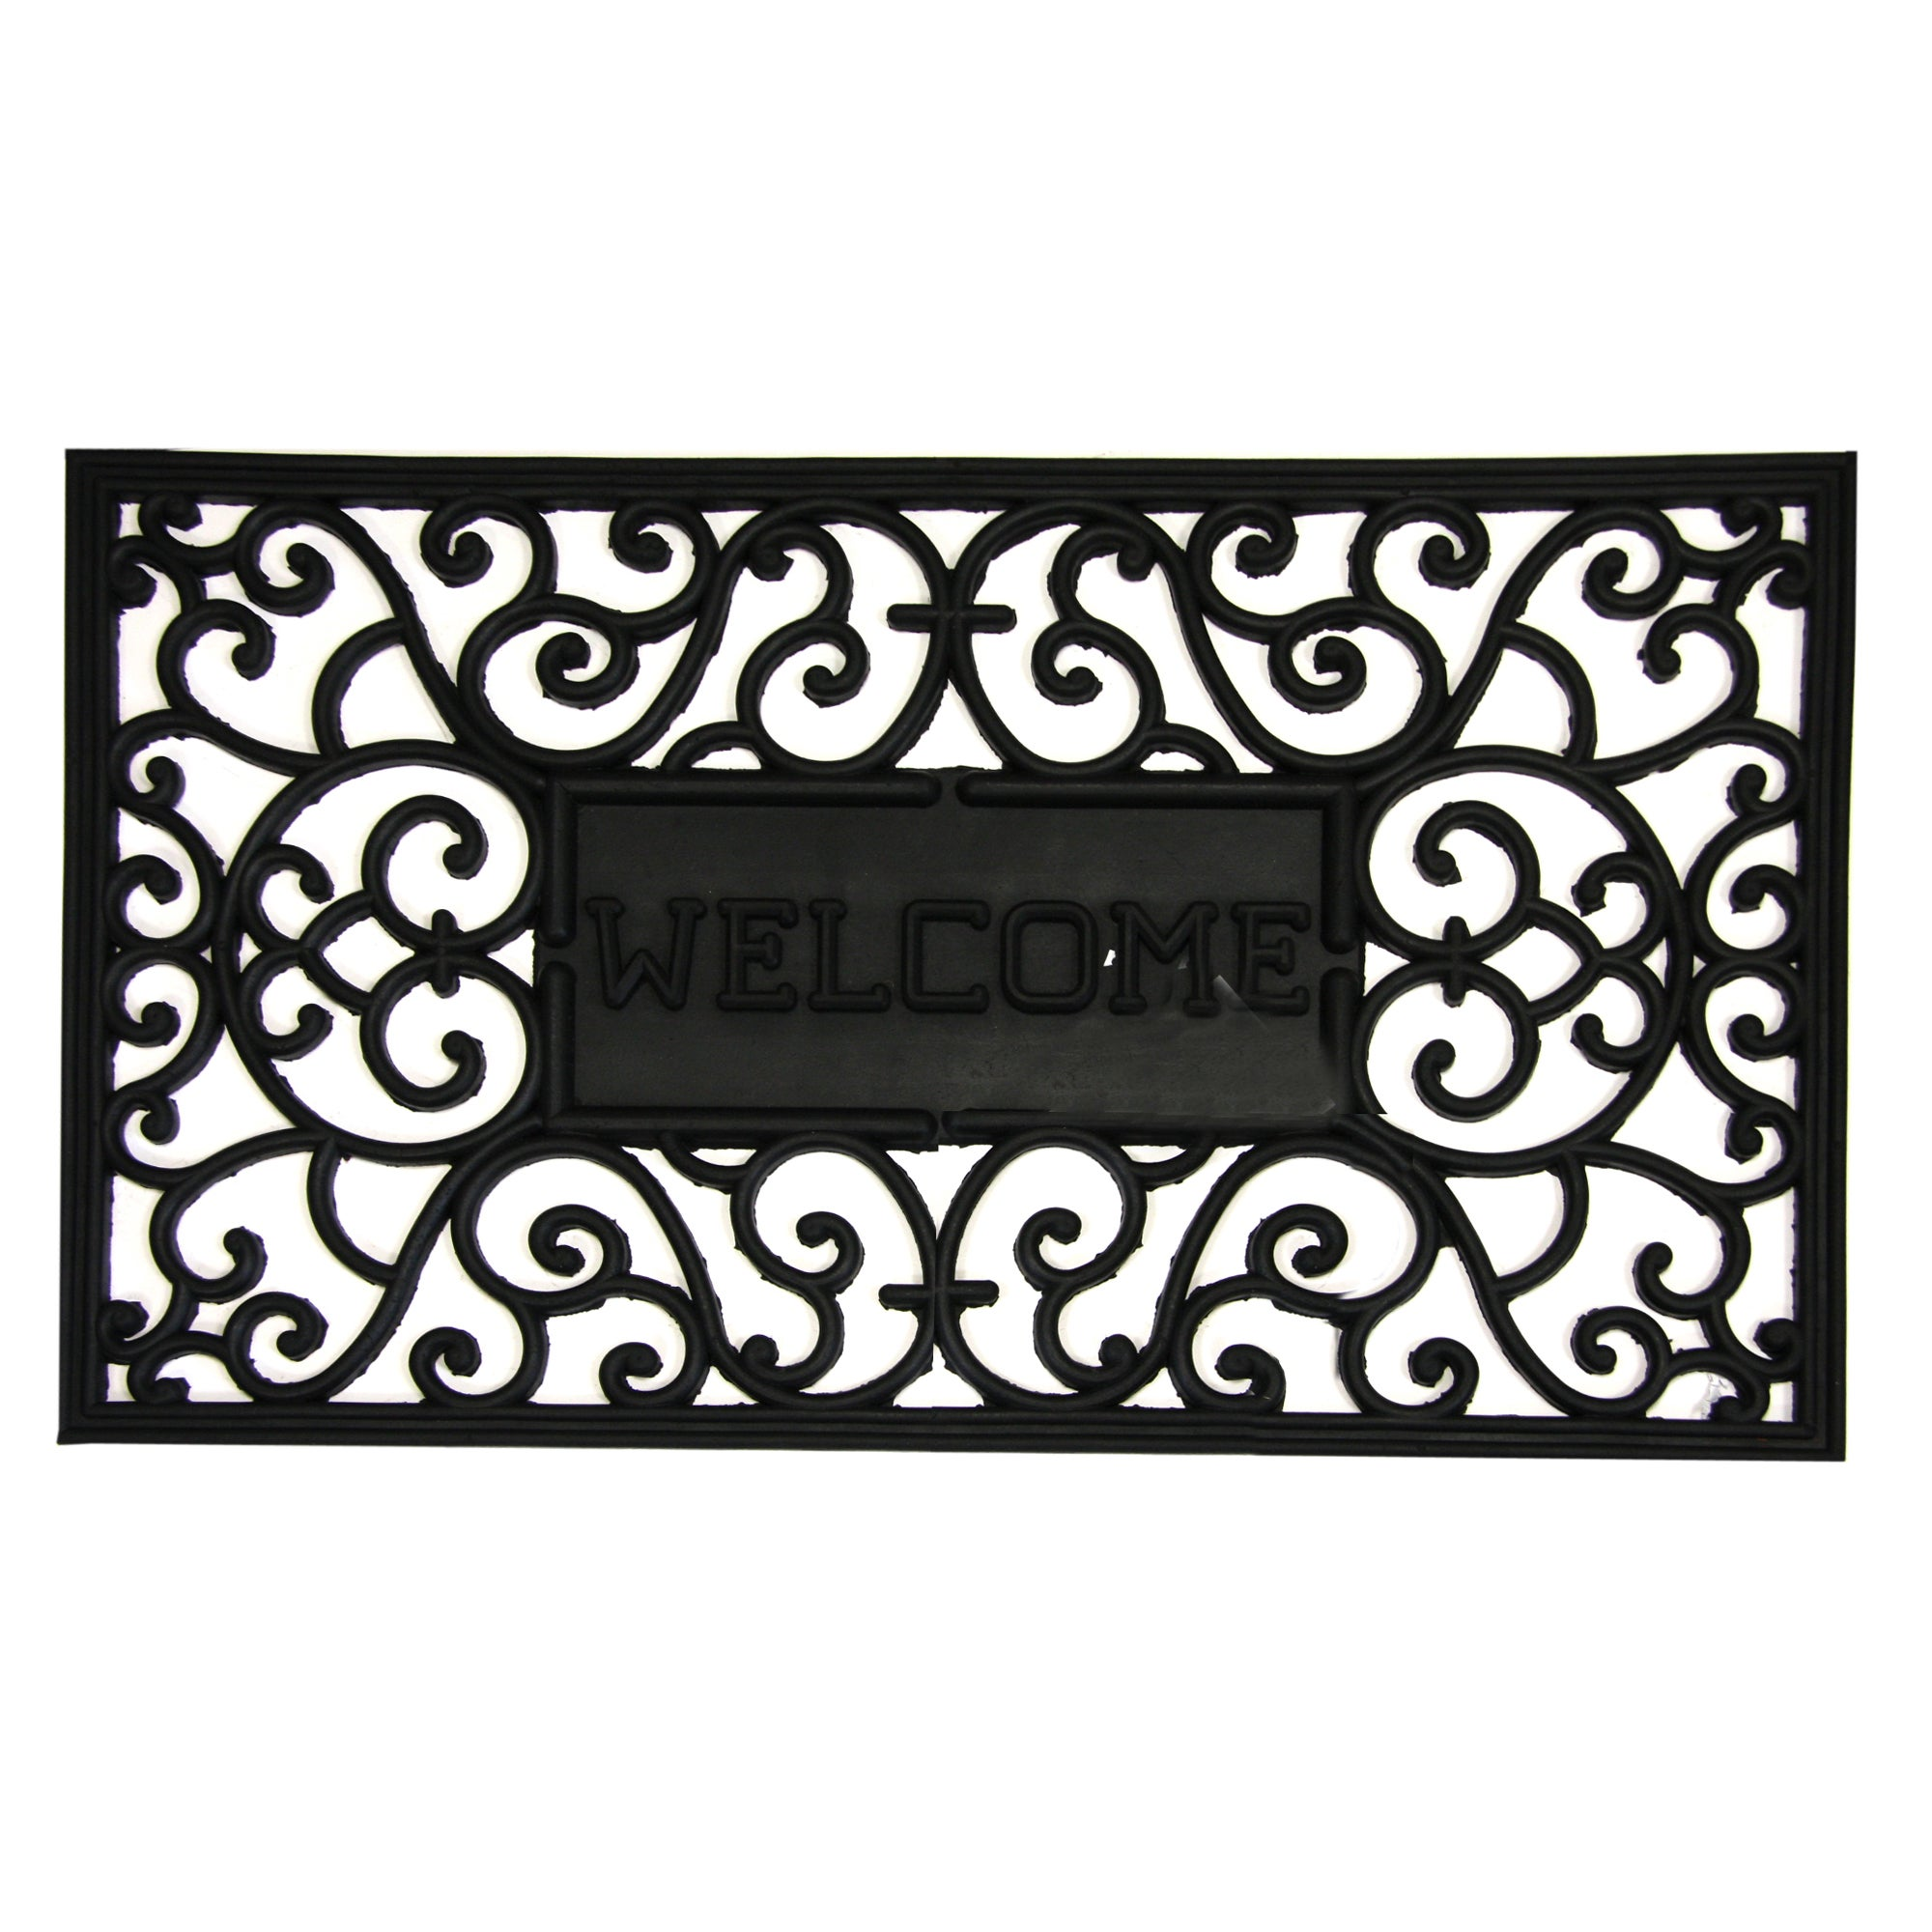 Welcome Rubber Doormat